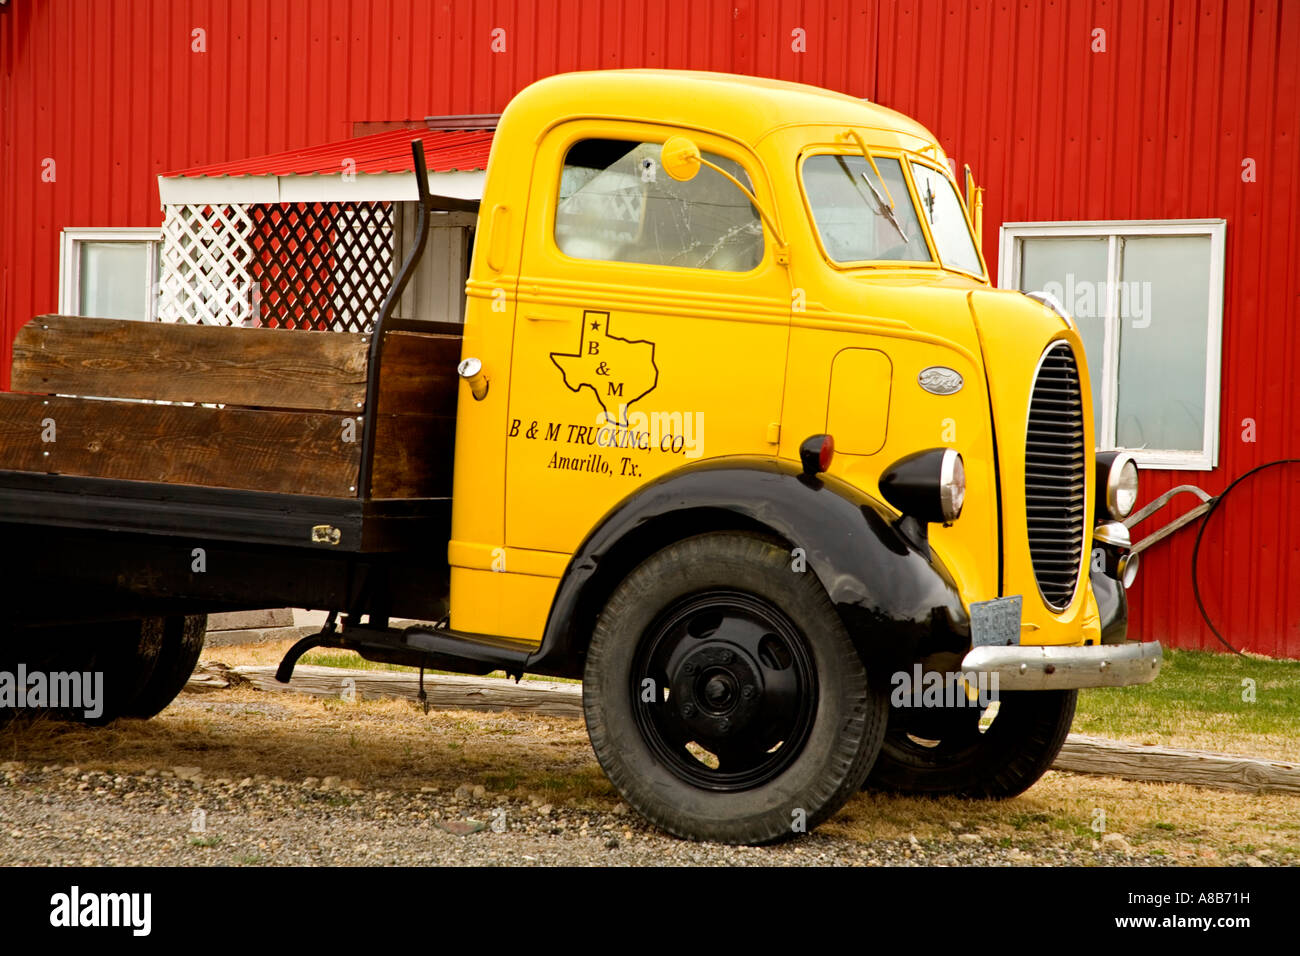 antique stores amarillo tx Old Truck Outside Antique Store Amarillo Texas USA Stock Photo  antique stores amarillo tx